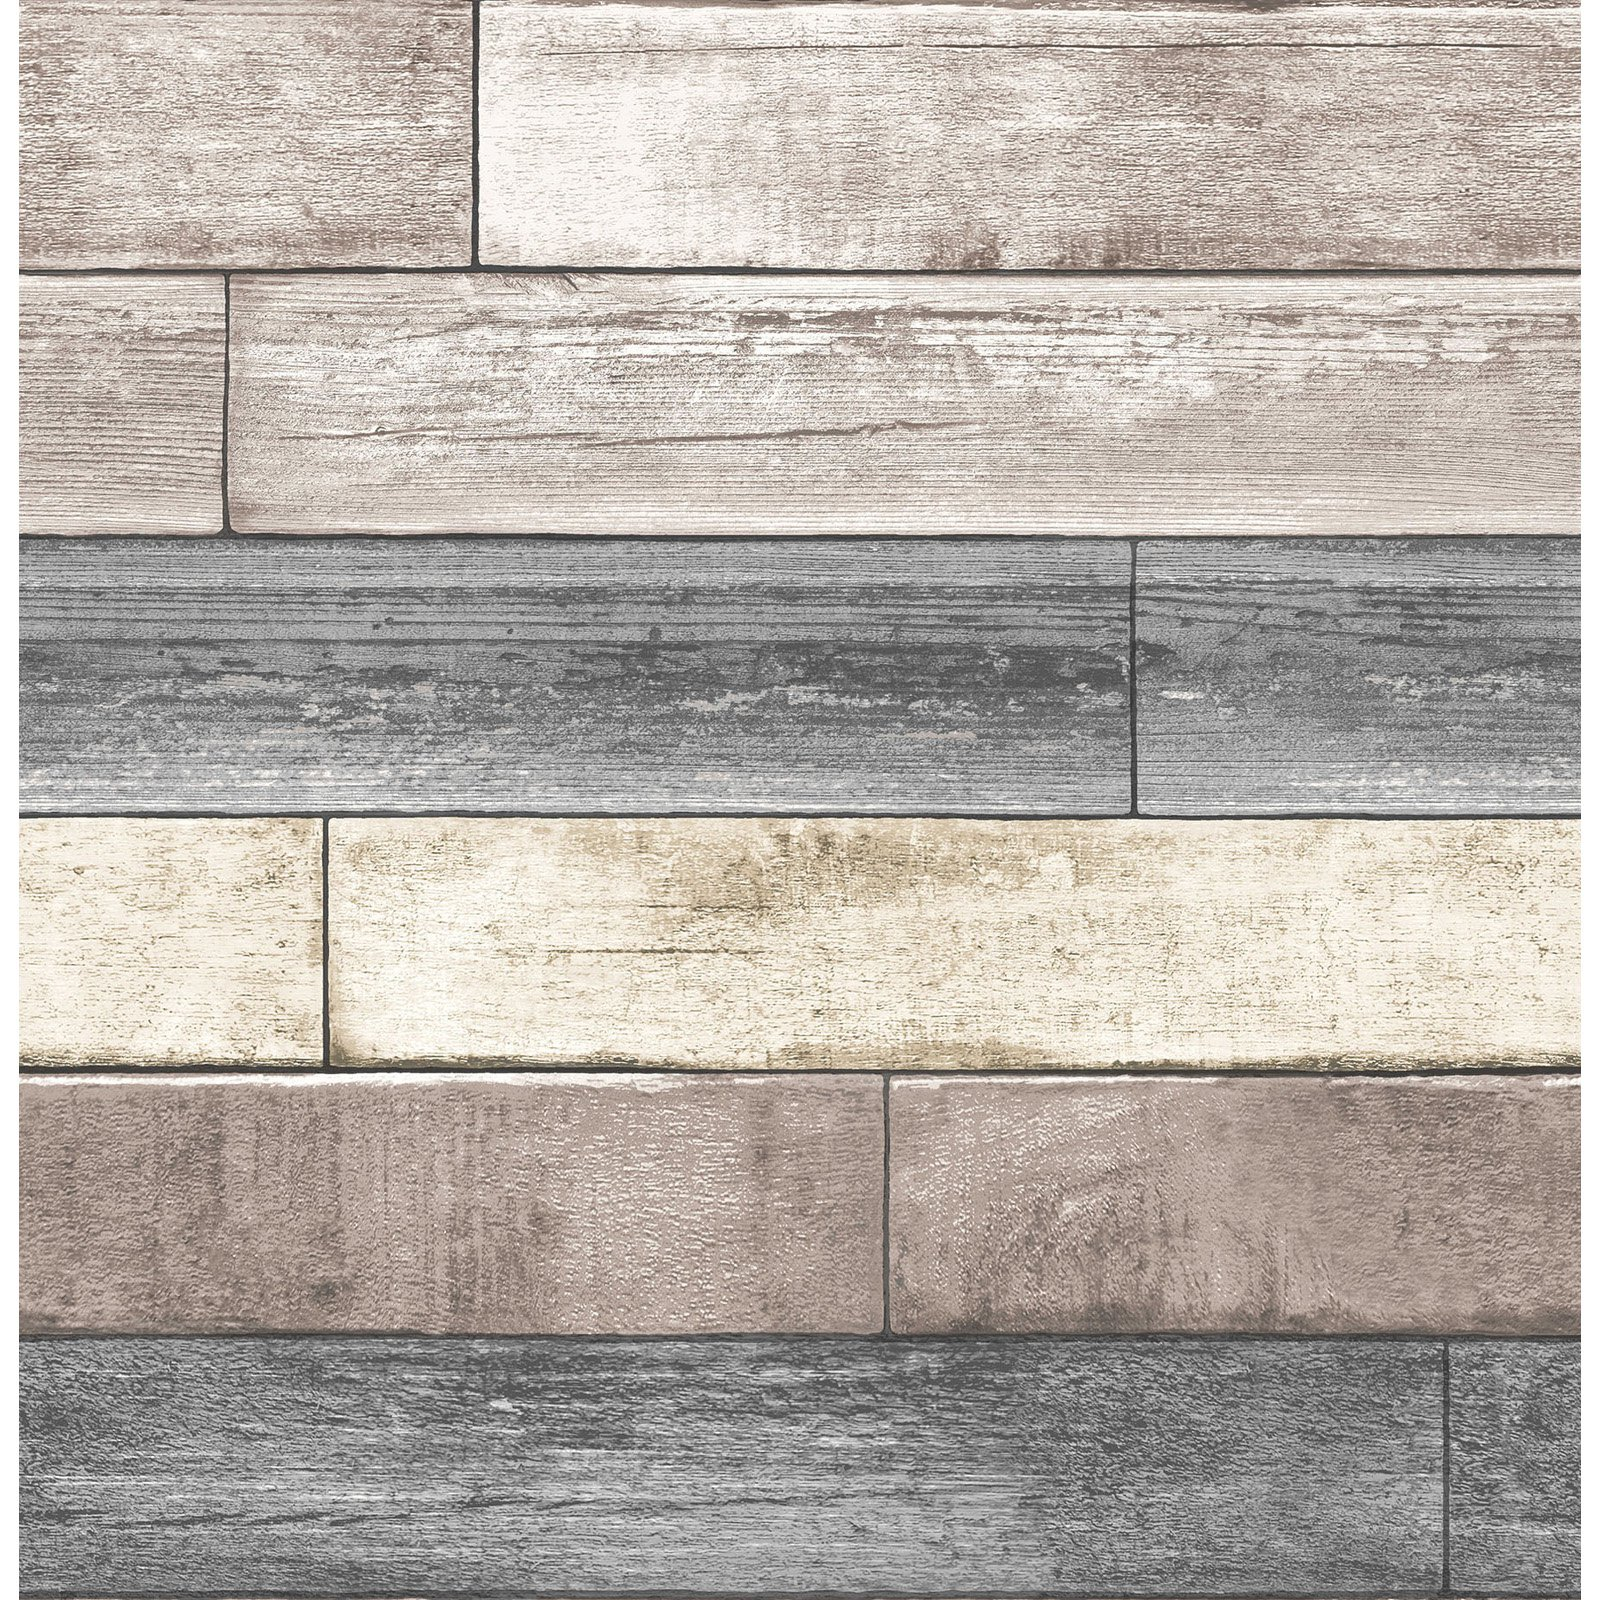 NuWallpaper Reclaimed Wood Plank Peel and Stick Wallpaper - Walmart.com